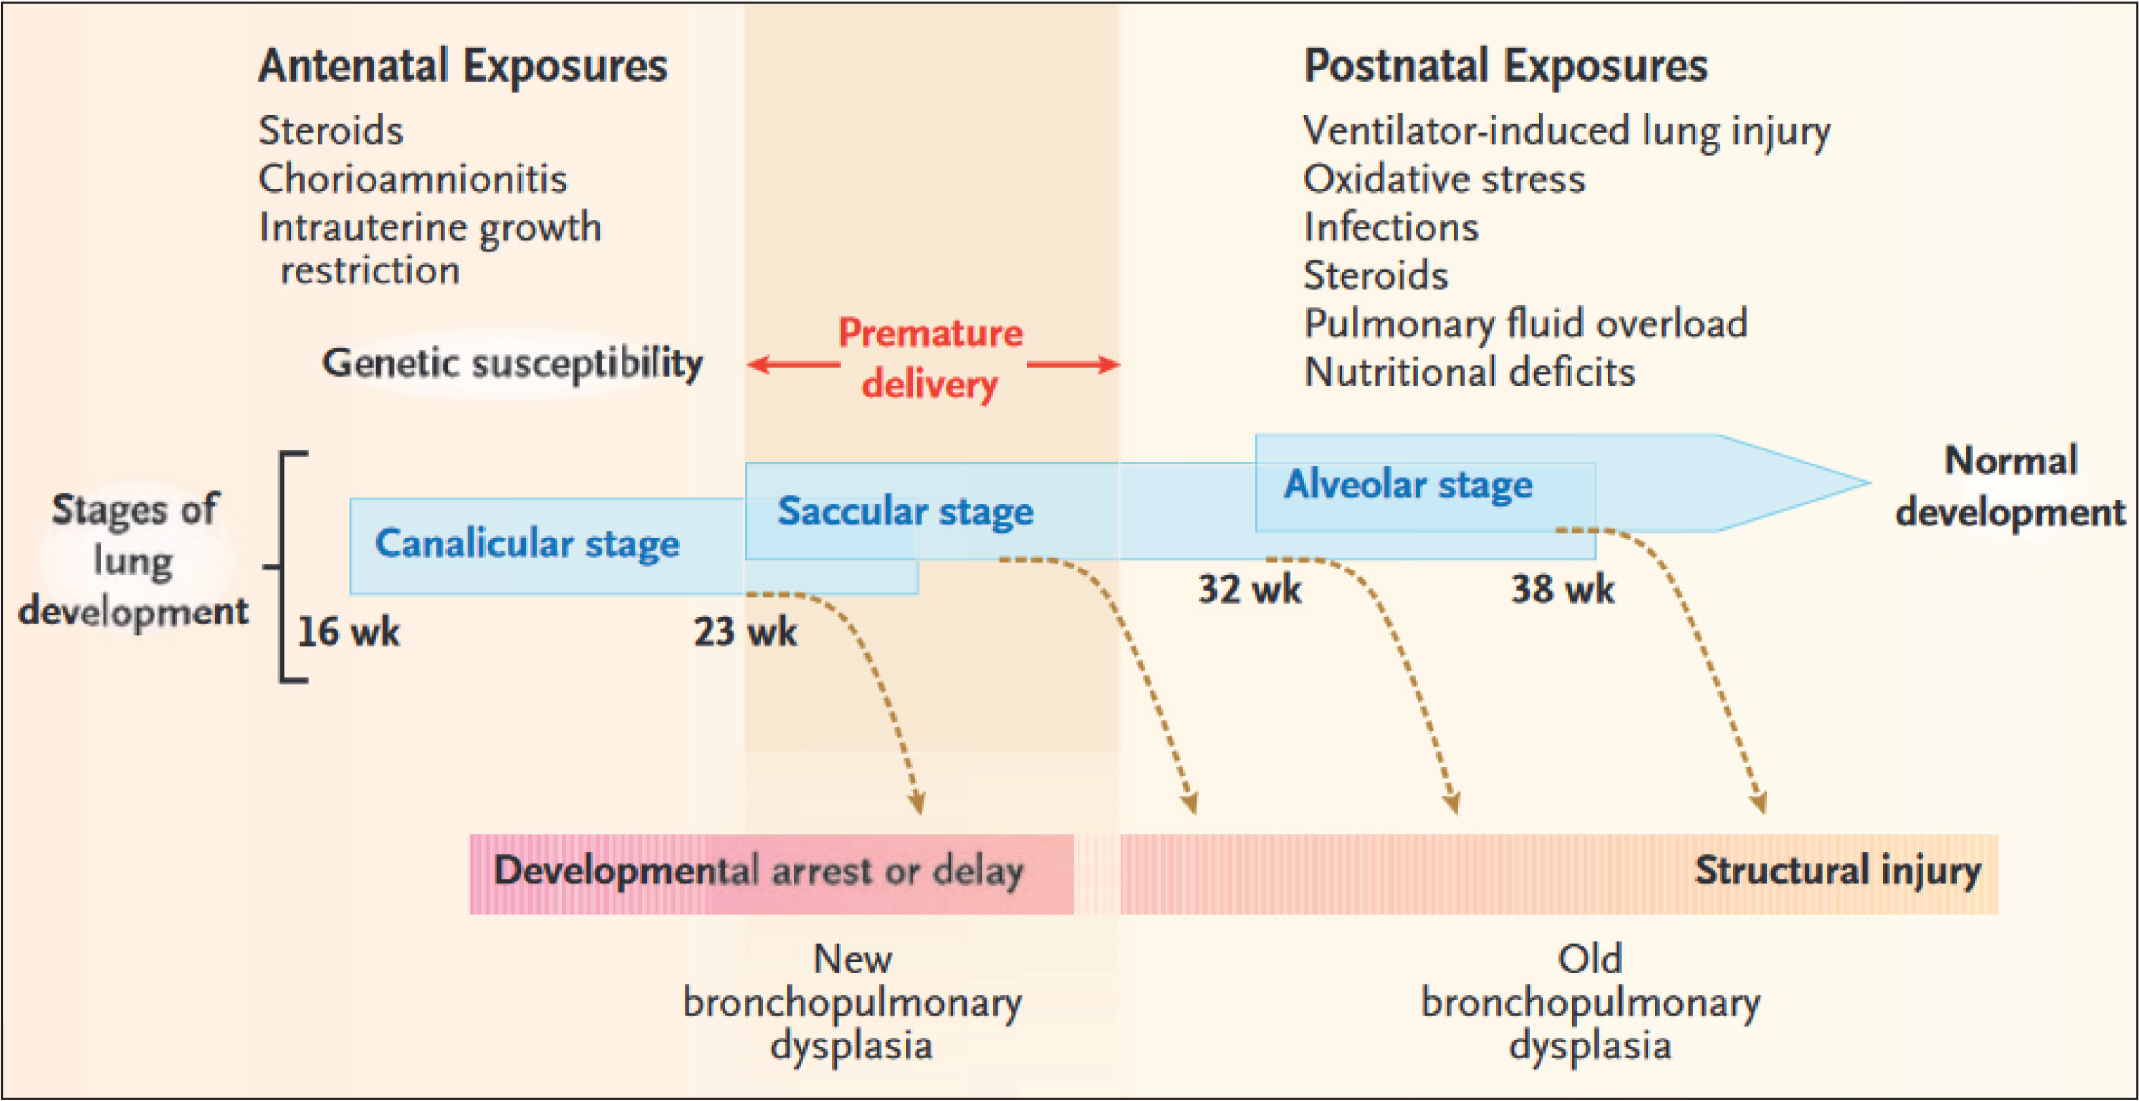 Stages of lung development, potentially damaging factors, and types of lung Injury. In premature newborns, the lungs are often exposed to several sources of injury, both before and after birth. Such exposures, as well as genetic susceptibility to problematic lung development, may cause direct airway and parenchymal damage and induce a deviation from the normal developmental path. Depending on the timing and extent of the exposures, lung injury may range from early developmental arrest (new bronchopulmonary dysplasia) to structural damage of a relatively immature lung (old bronchopulmonary dysplasia). Premature infants born at a gestational age of 23 to 30 weeks (region shaded light red) during the canalicular and saccular stages of lung development are at the greatest risk for bronchopulmonary dysplasia. Reprinted from Baraldi and Filippone36 with permission from the Massachusetts Medical Society. © 2007 Massachusetts Medical Society.